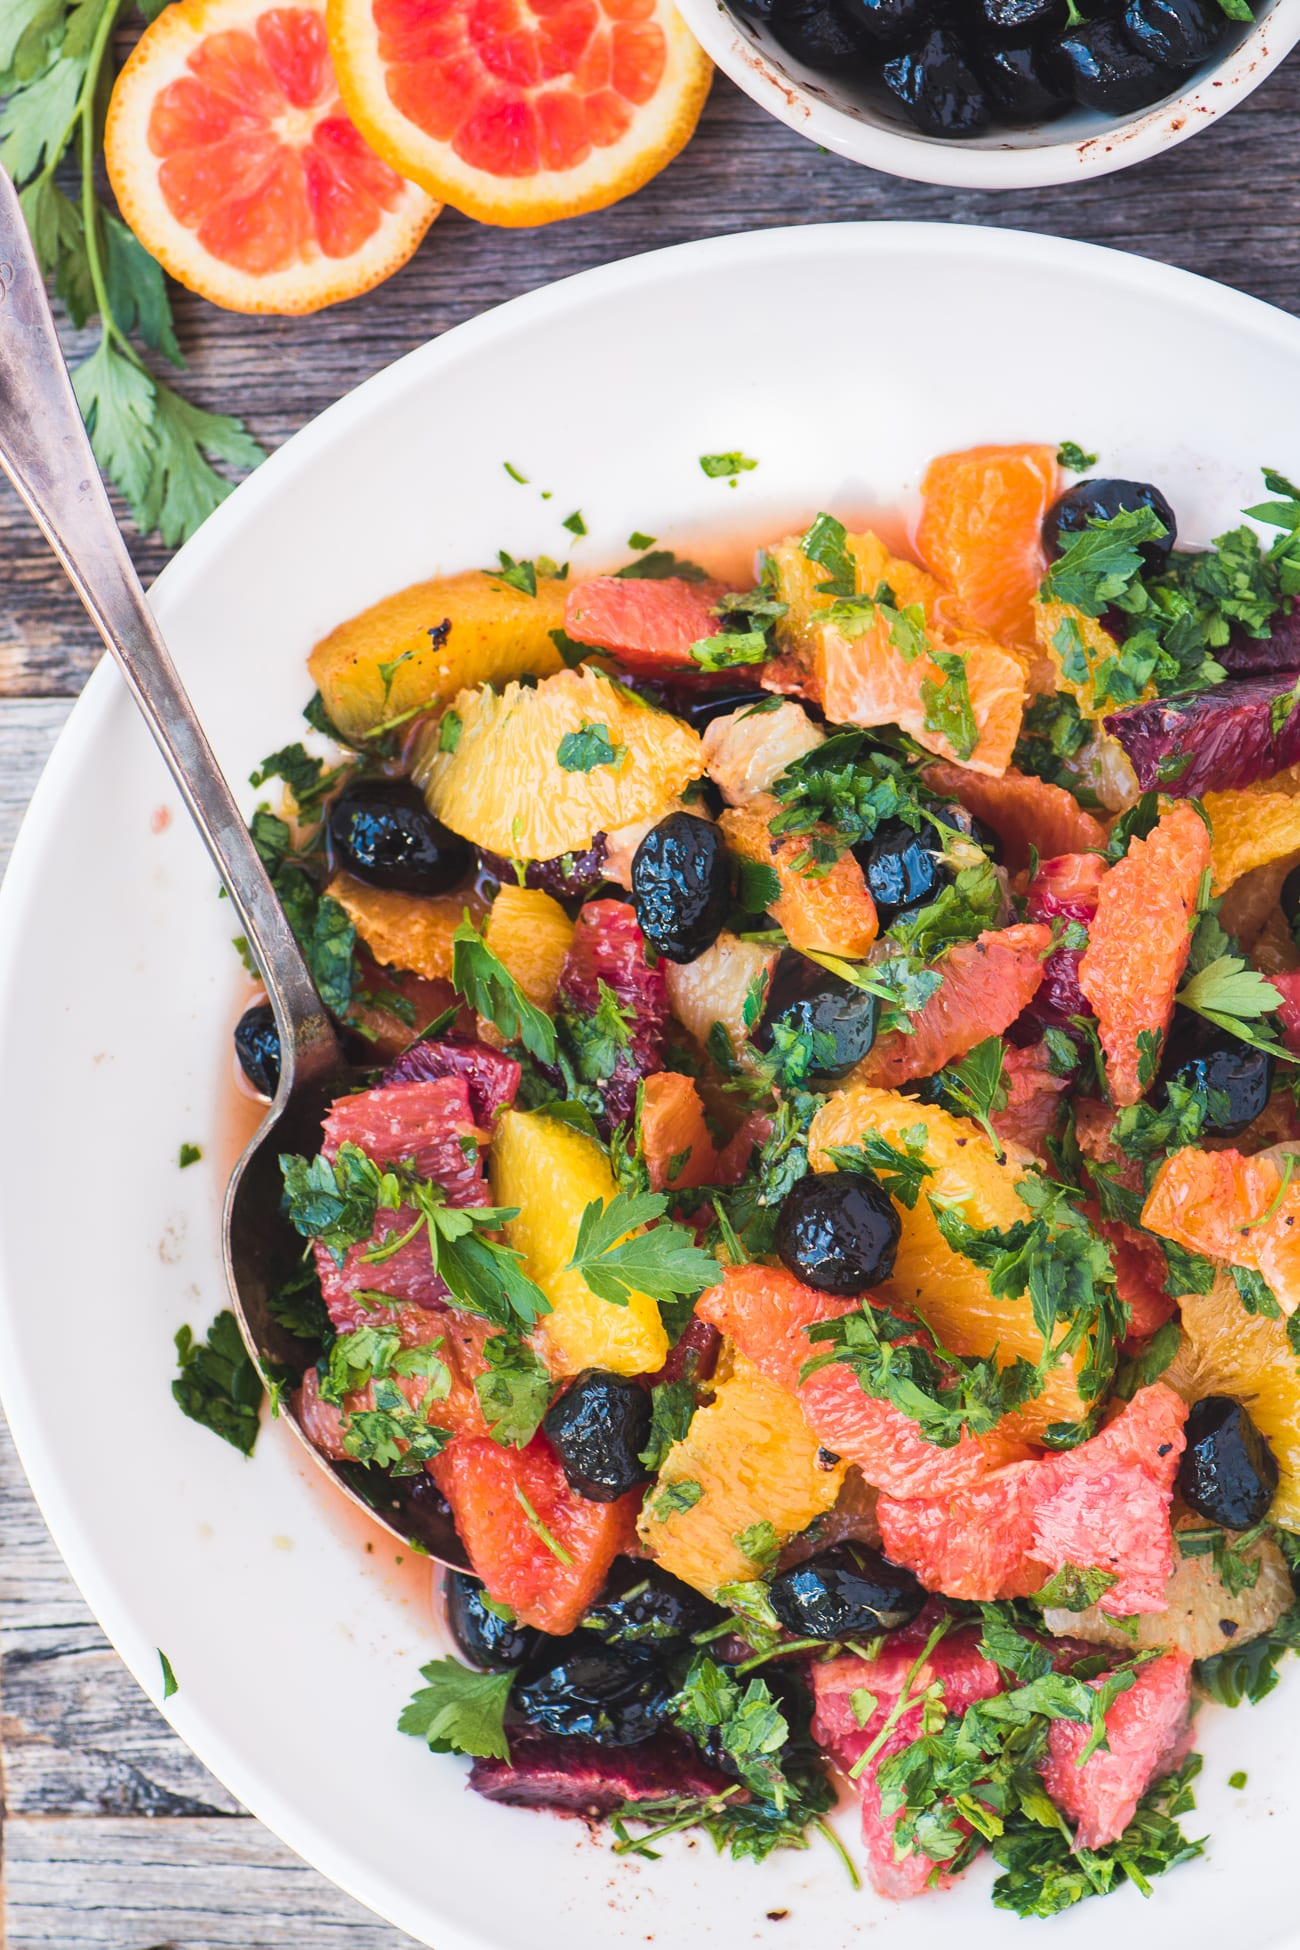 Spicy Mixed Citrus Salad